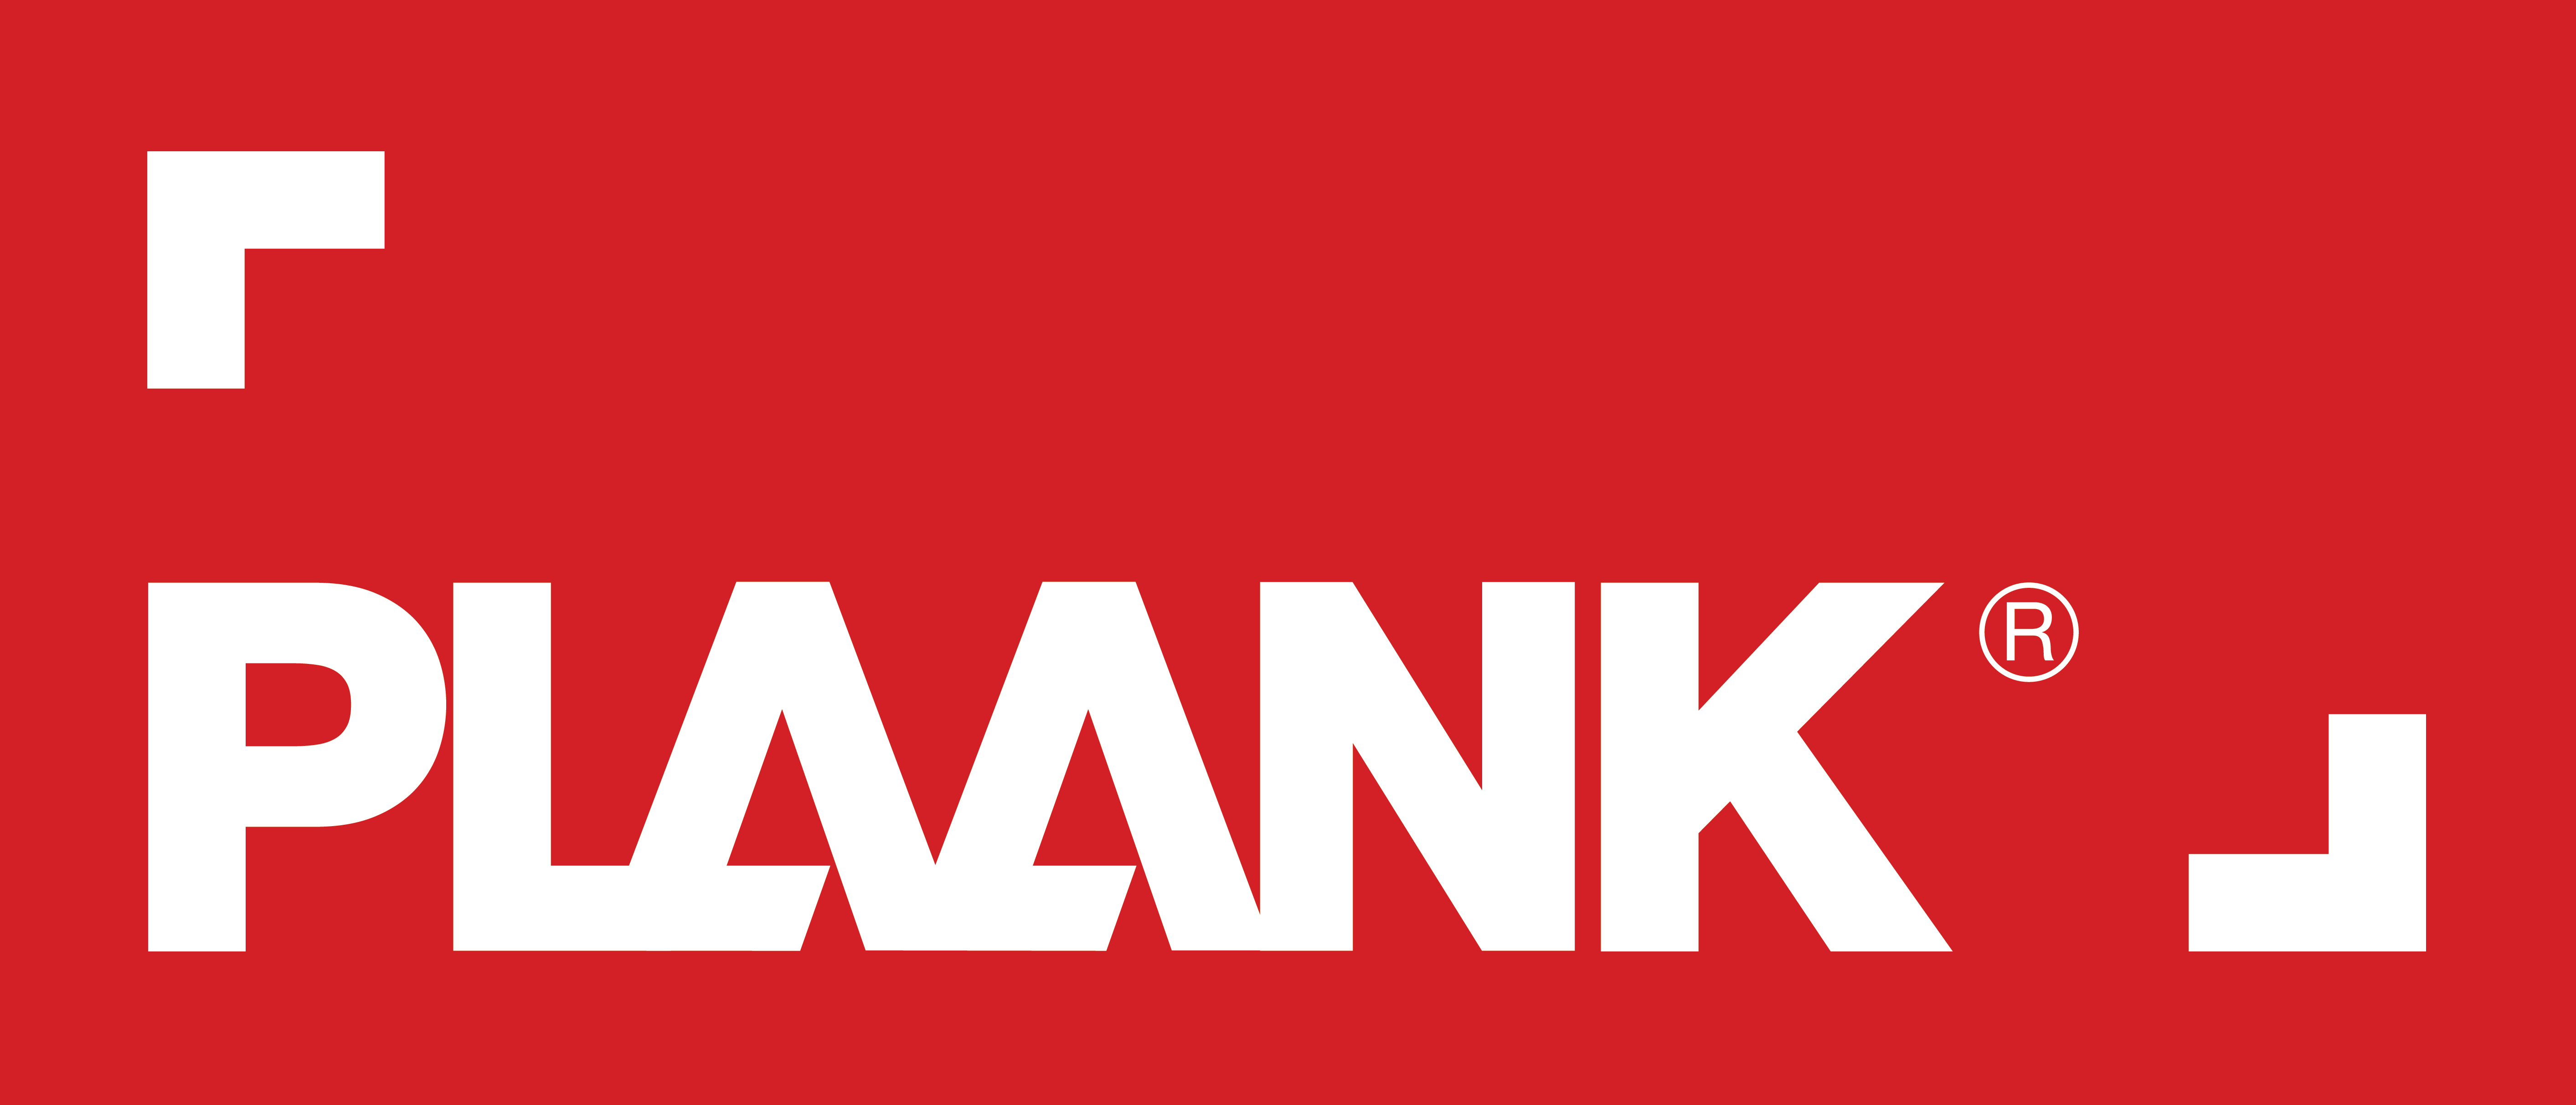 plaank_logo_red